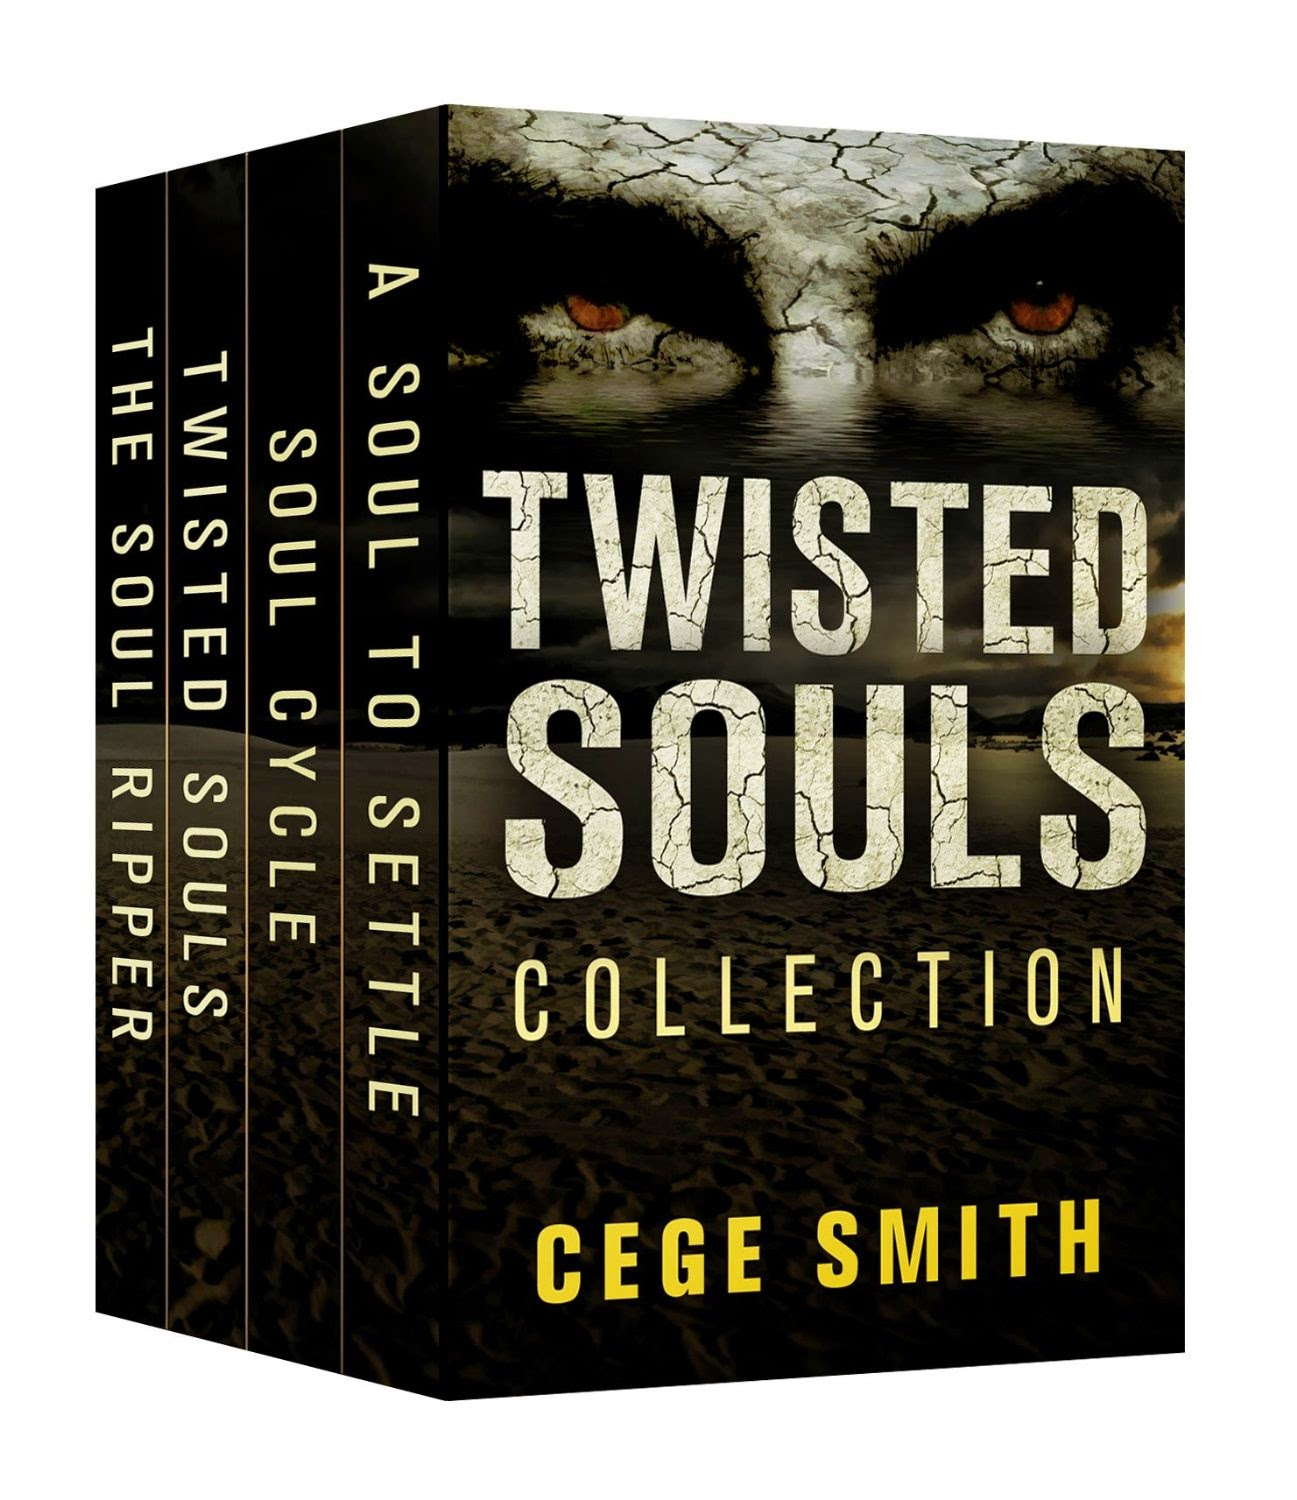 http://www.amazon.com/s/ref=nb_sb_noss?url=search-alias%3Dstripbooks&field-keywords=cege+smith+twisted+souls+box+set